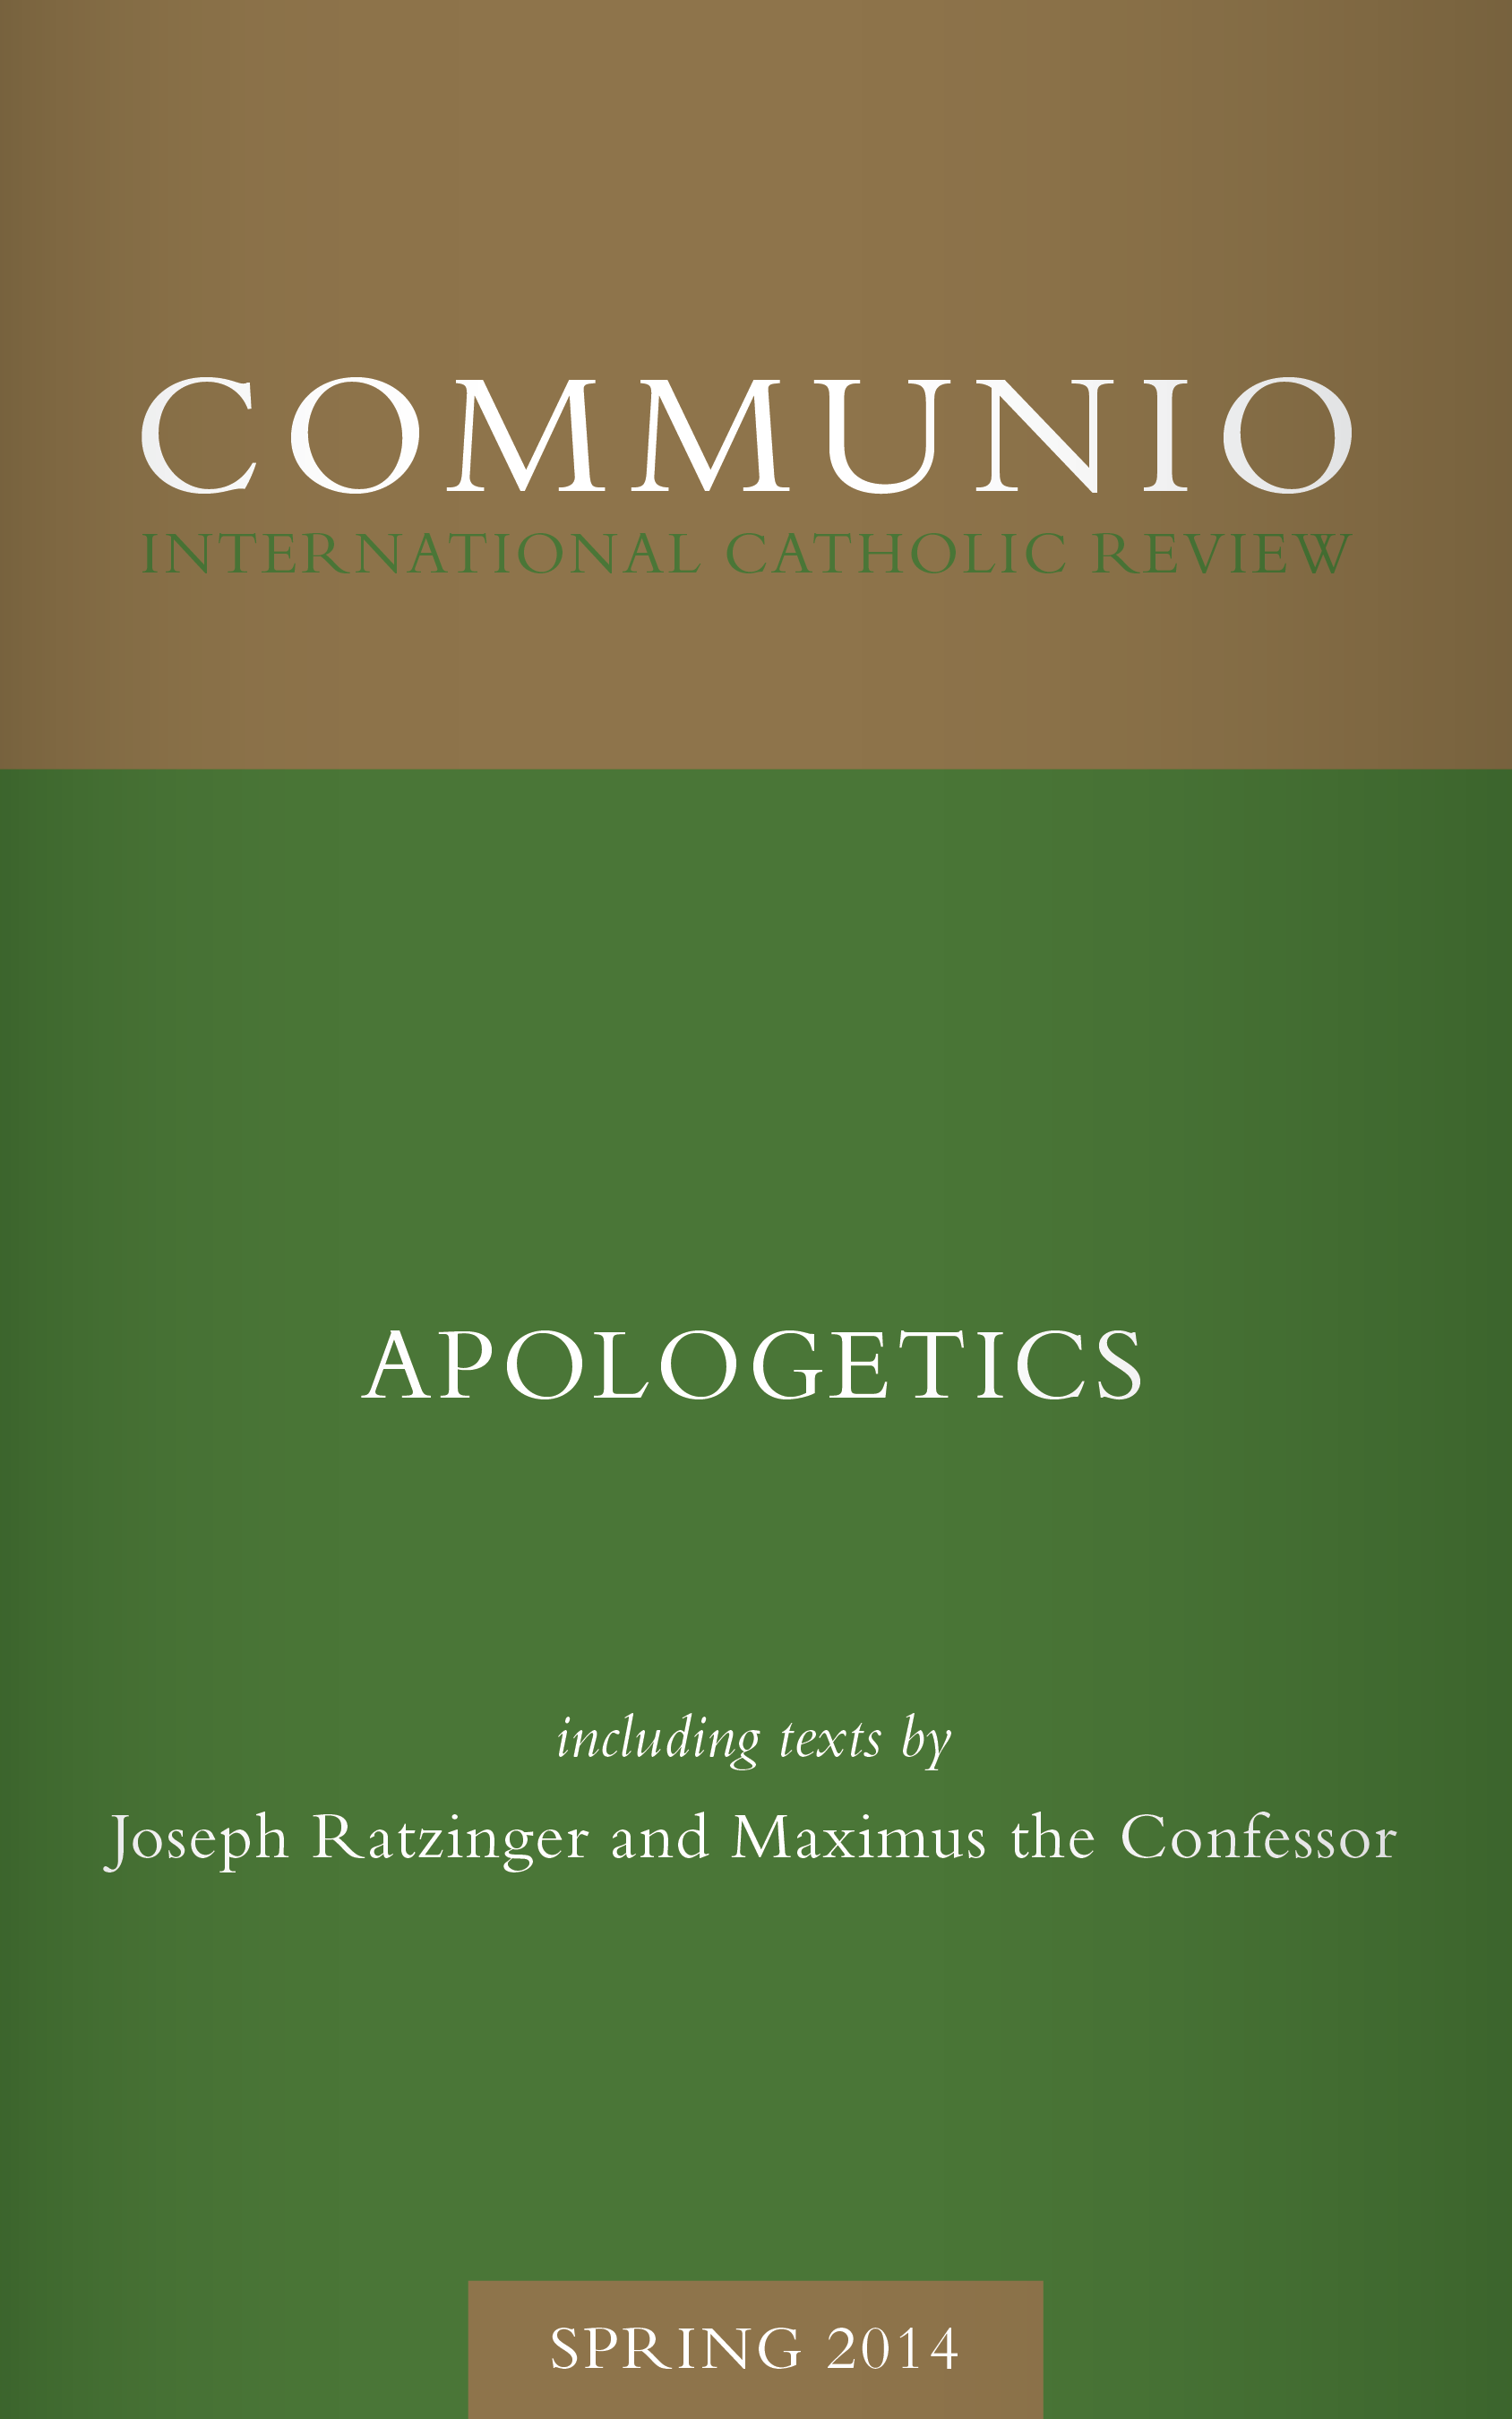 Communio - Spring 2014 - Apologetics (Photocopy)